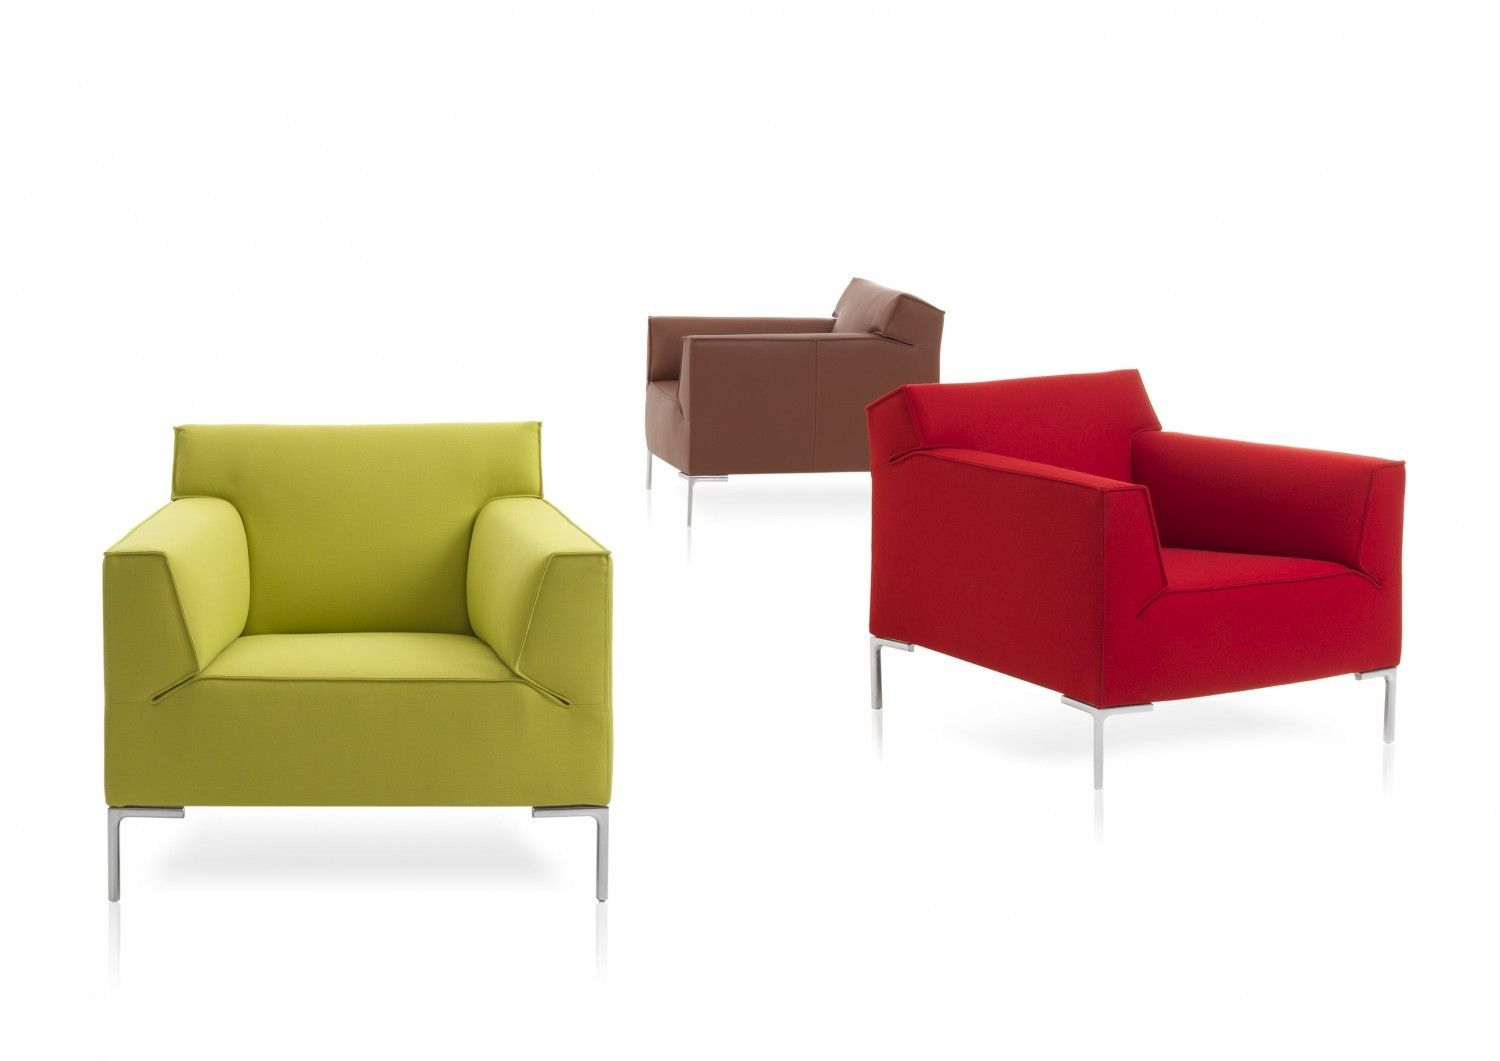 Design On Stock Bloq Fauteuil.Design On Stock Bloq Fauteuil